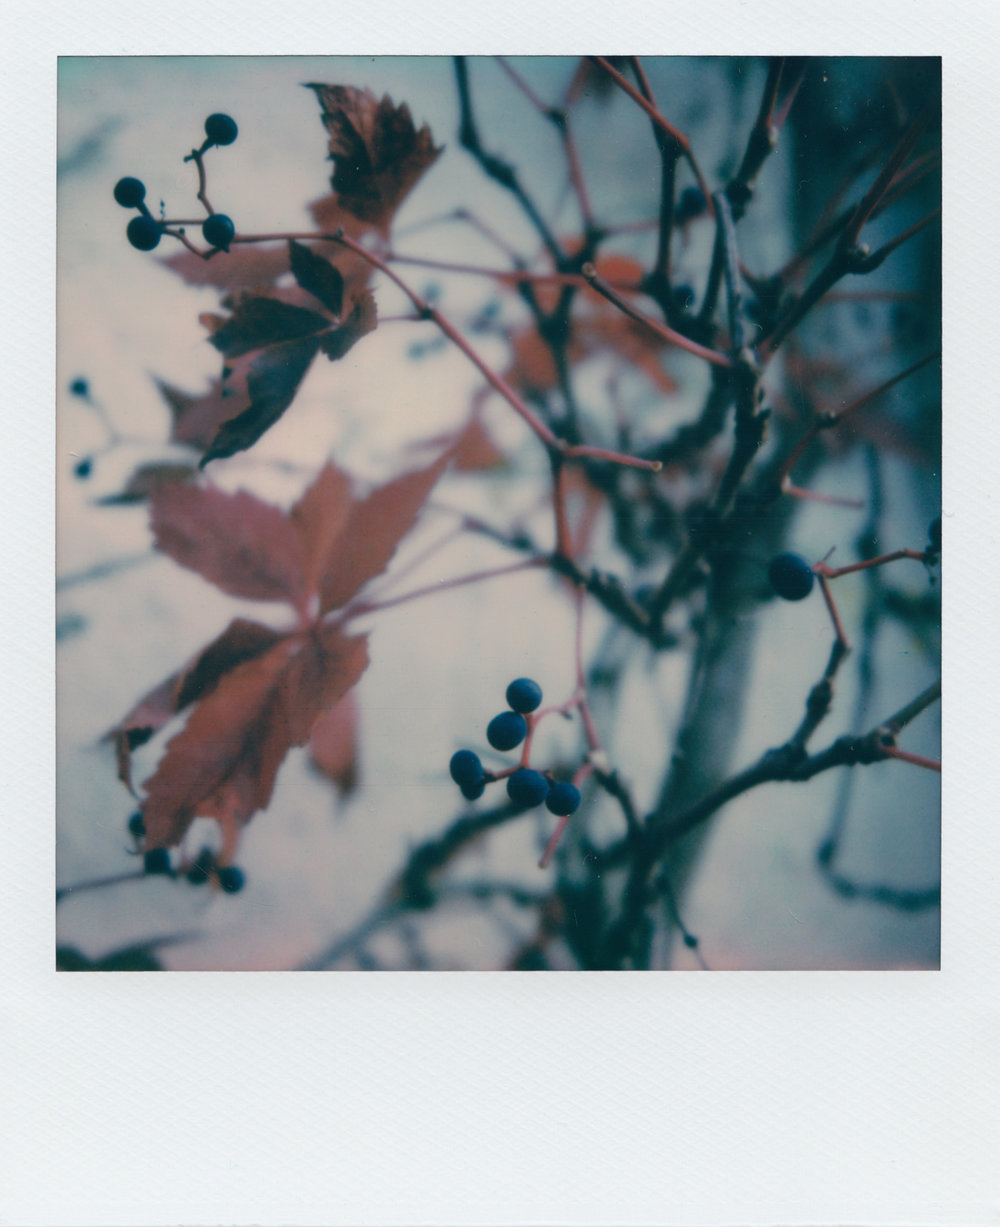 Falling for Fall | Polaroid SX70 | Impossible Colour | Ioana Tăut